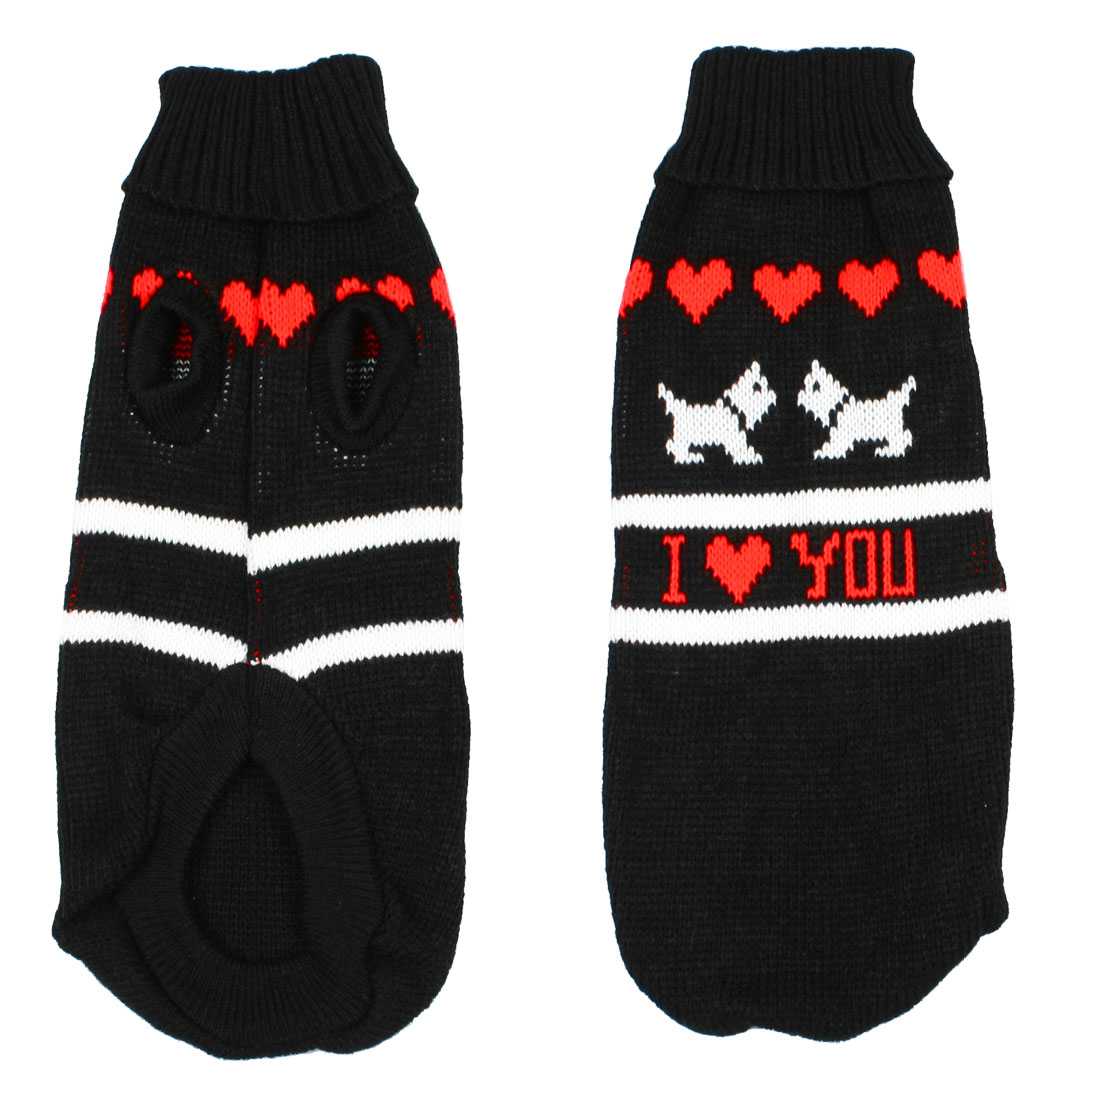 Turtleneck Heart Print Hand Knit Dog Sweater Clothing Coat Doggie Apparel S